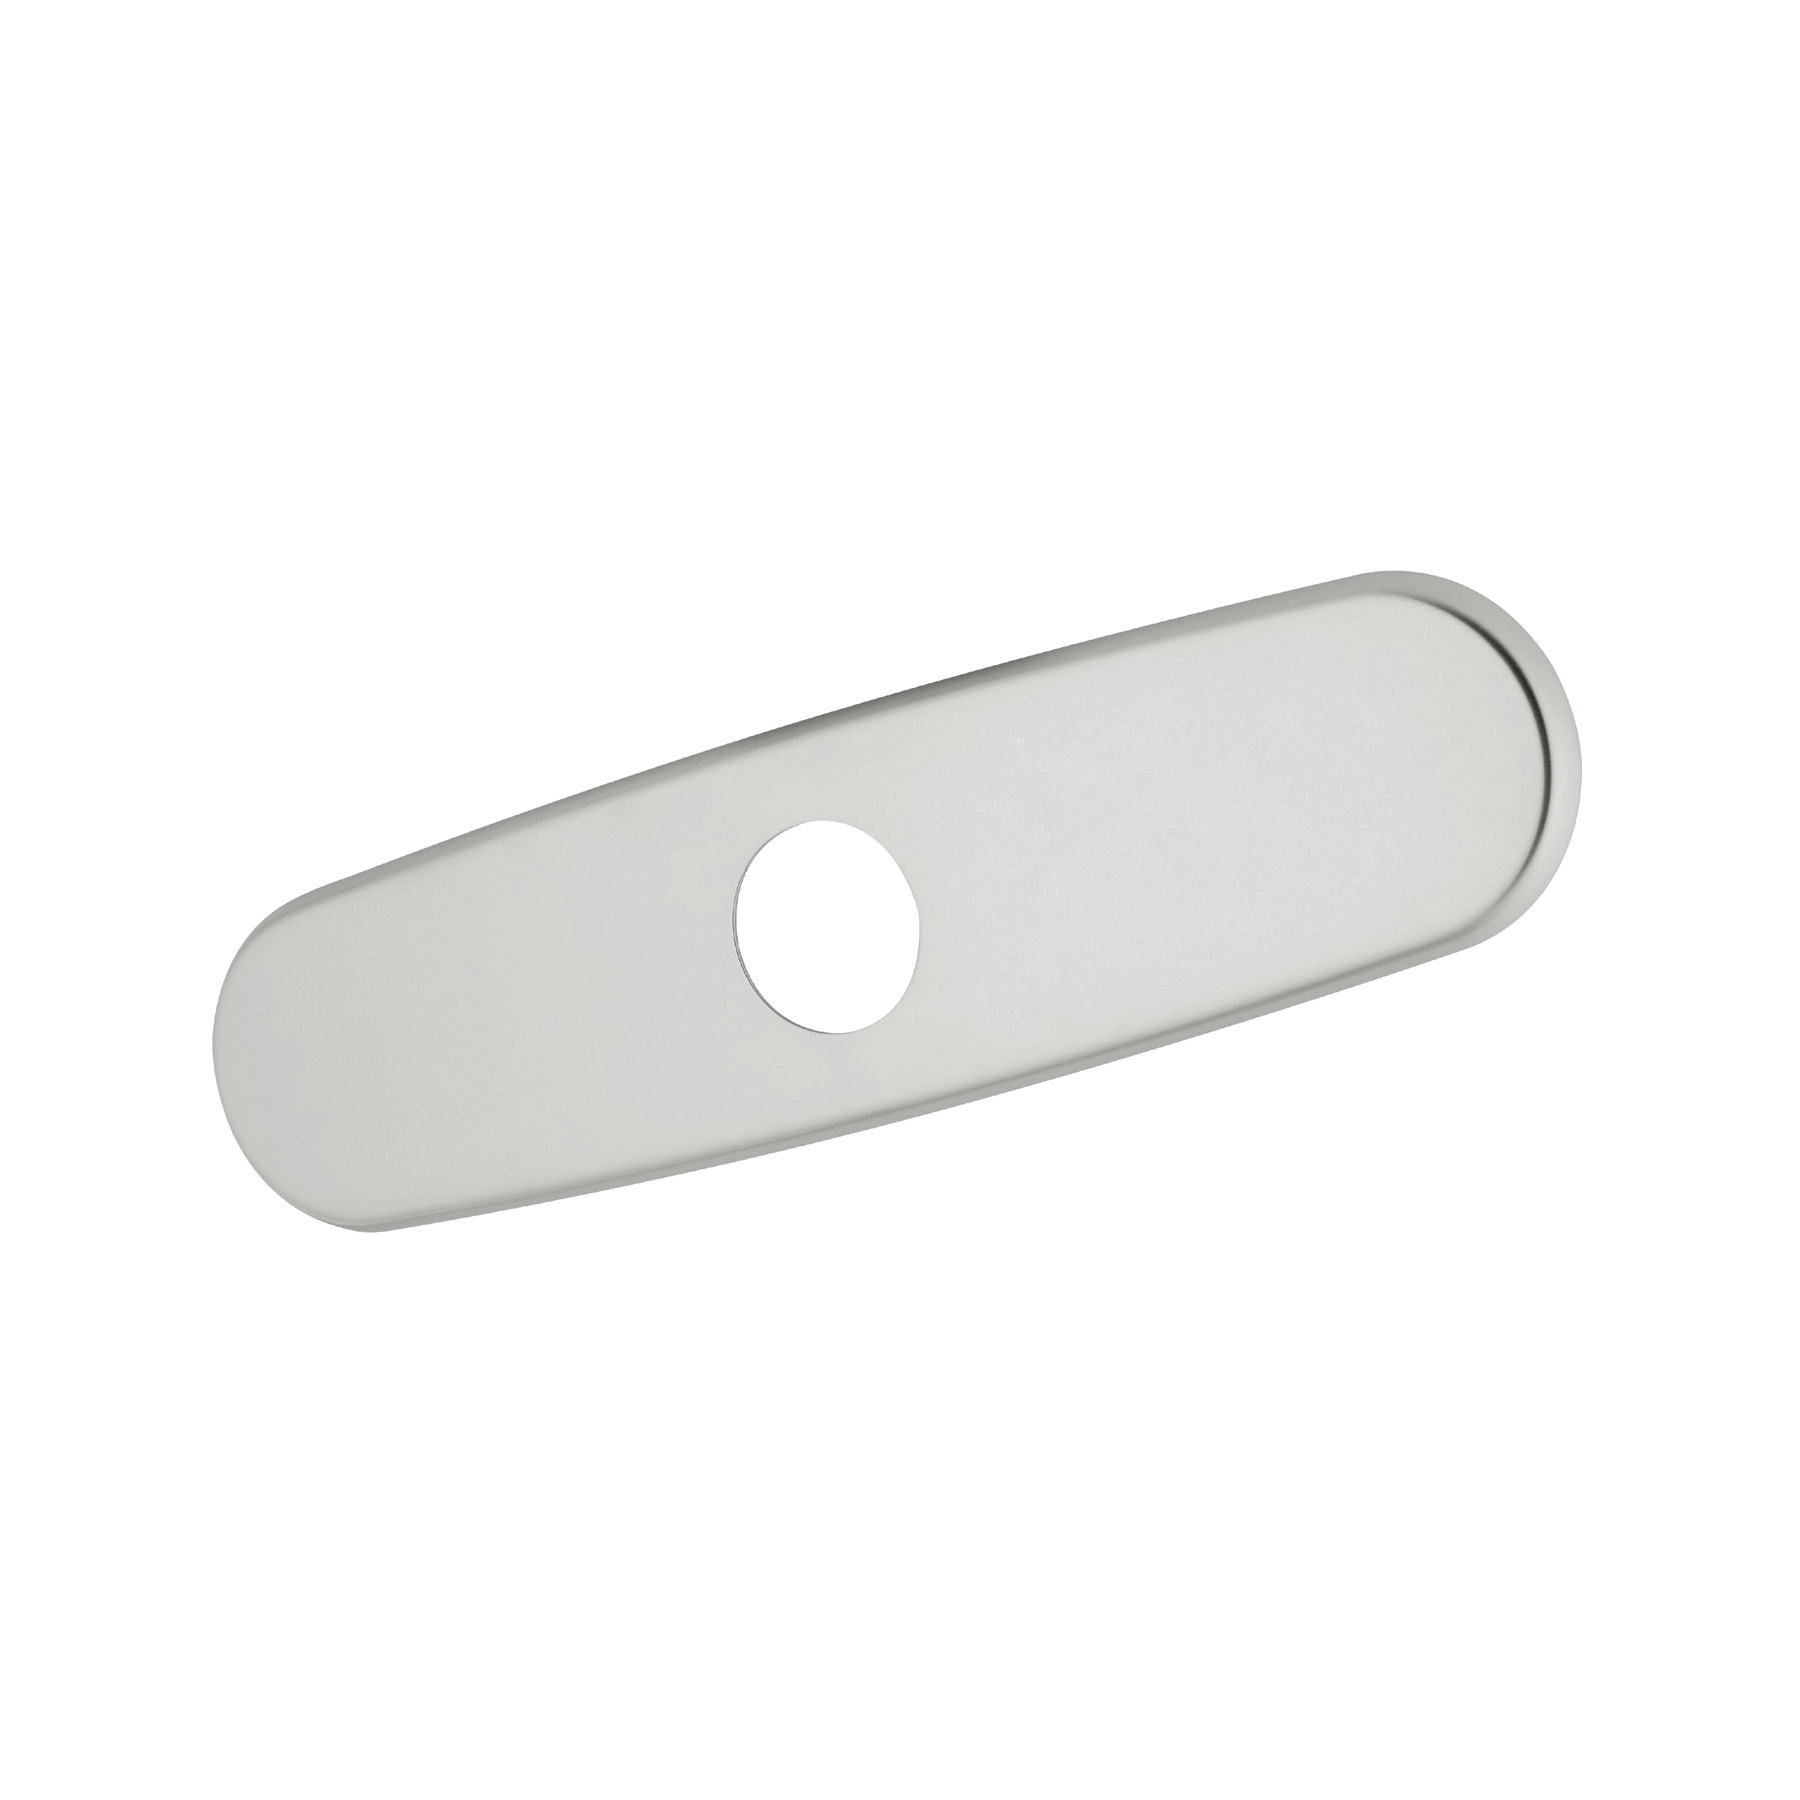 GROHE 07552SD0 Escutcheon, For Use With Centerset Kitchen, Bar, Lavatory and Bidet Faucet to Cover Unused Mounting Hole, 10 in L, Brushed Stainless Steel, Import